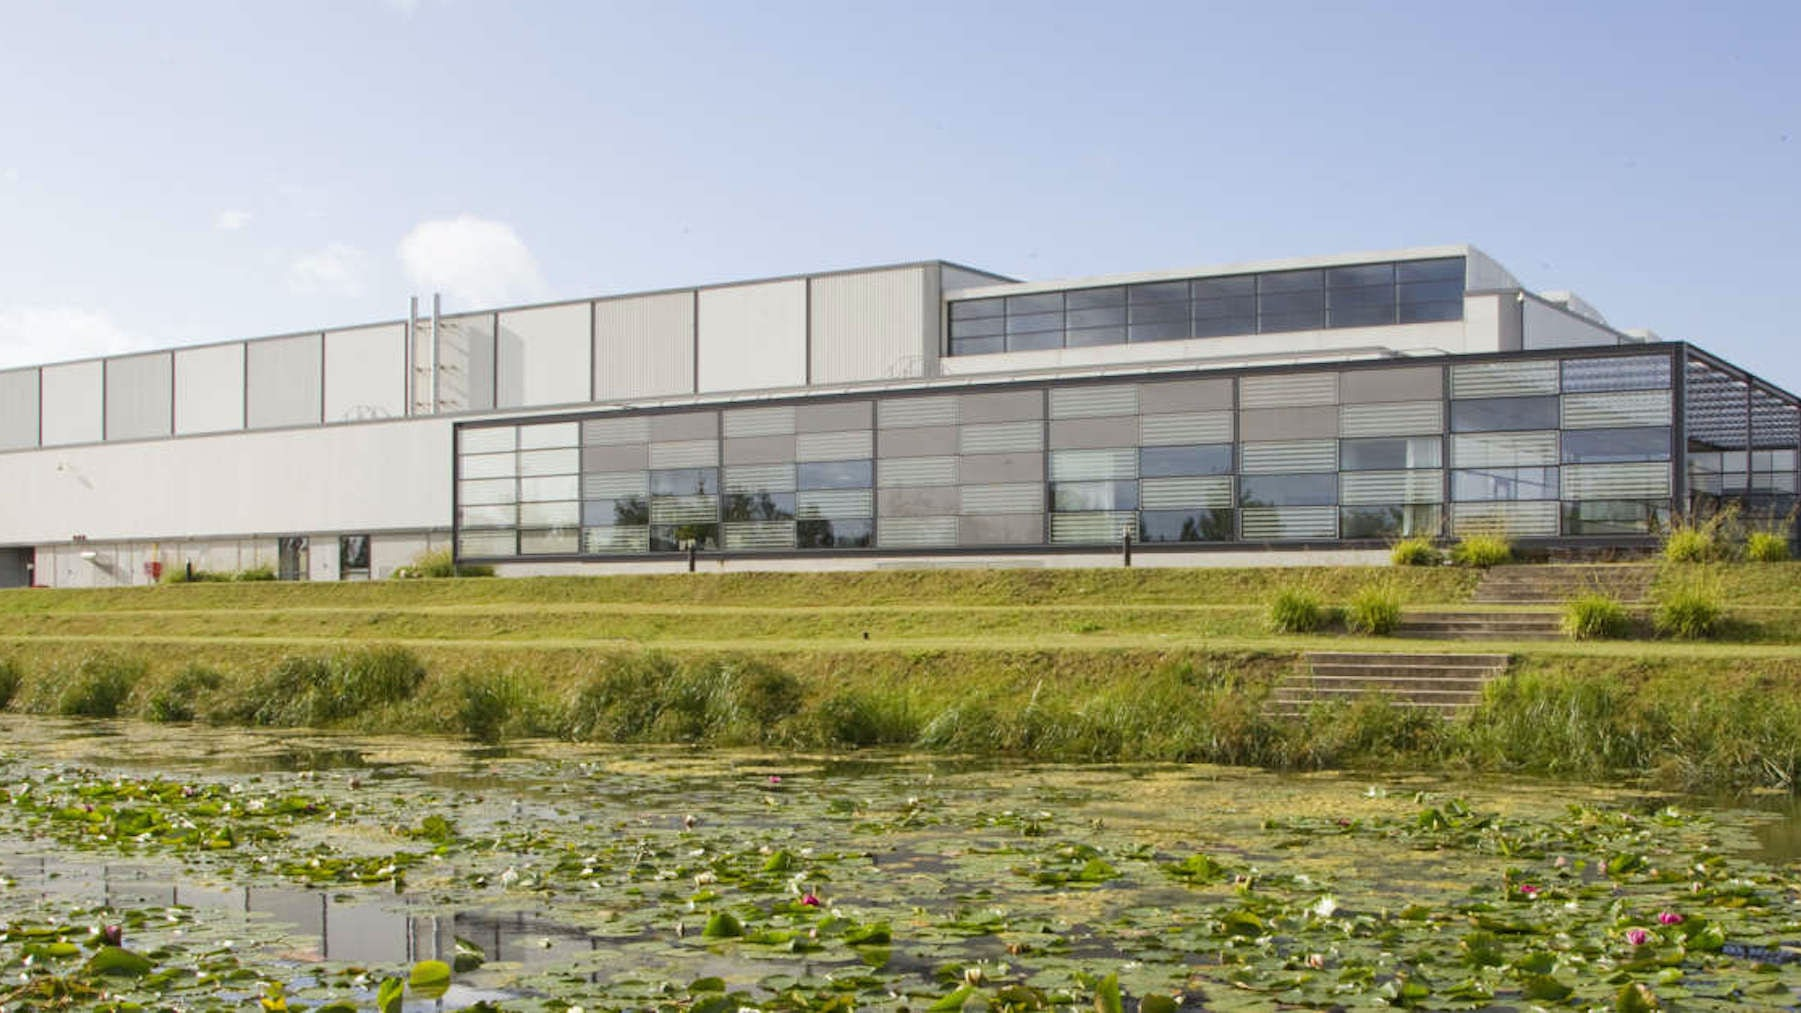 LVMH logistics centre, Eole, France | Source: Louis Vuitton Malletier/Mazen Saggar